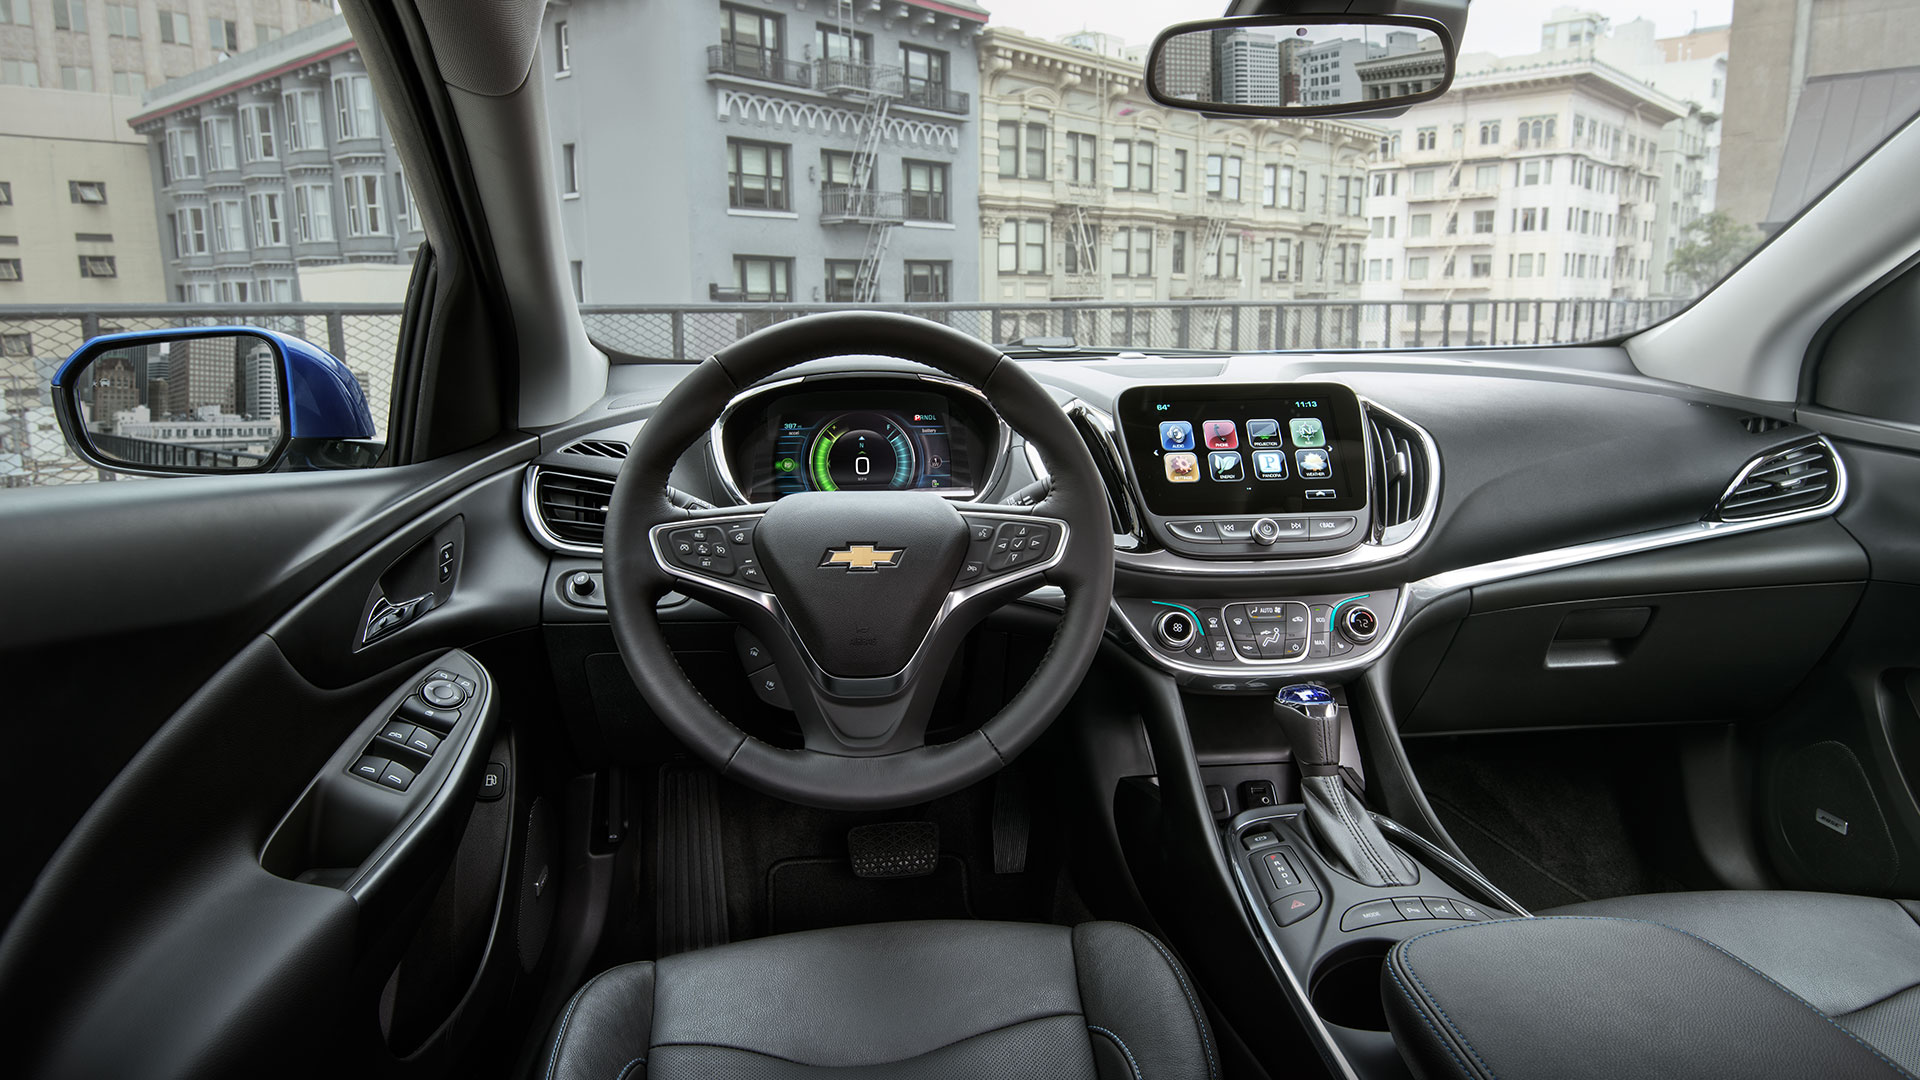 Valley Chevy - Chevrolet 2017 Volt: Leather Interior